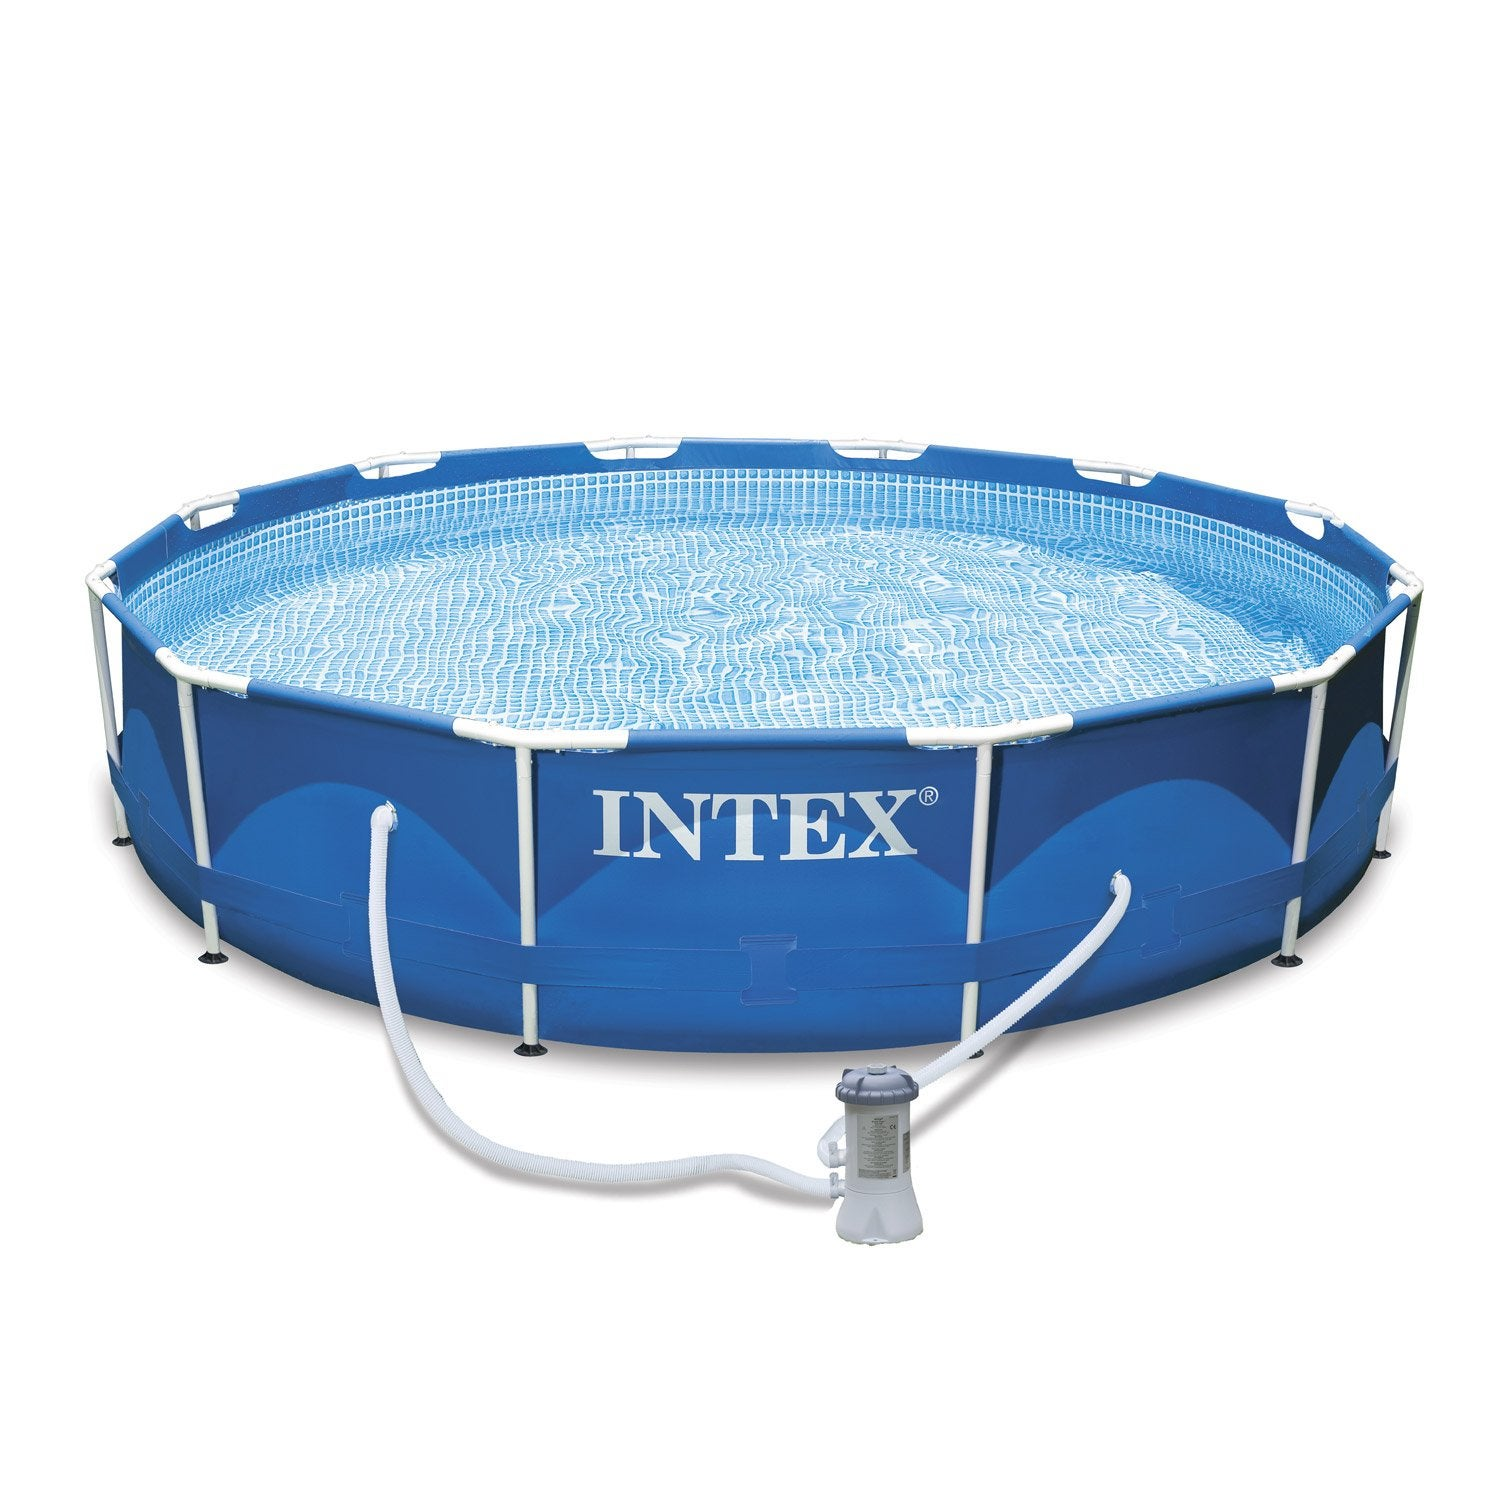 Piscine hors sol autoportante tubulaire 305x76 cm intex for Pompe piscine hors sol leroy merlin